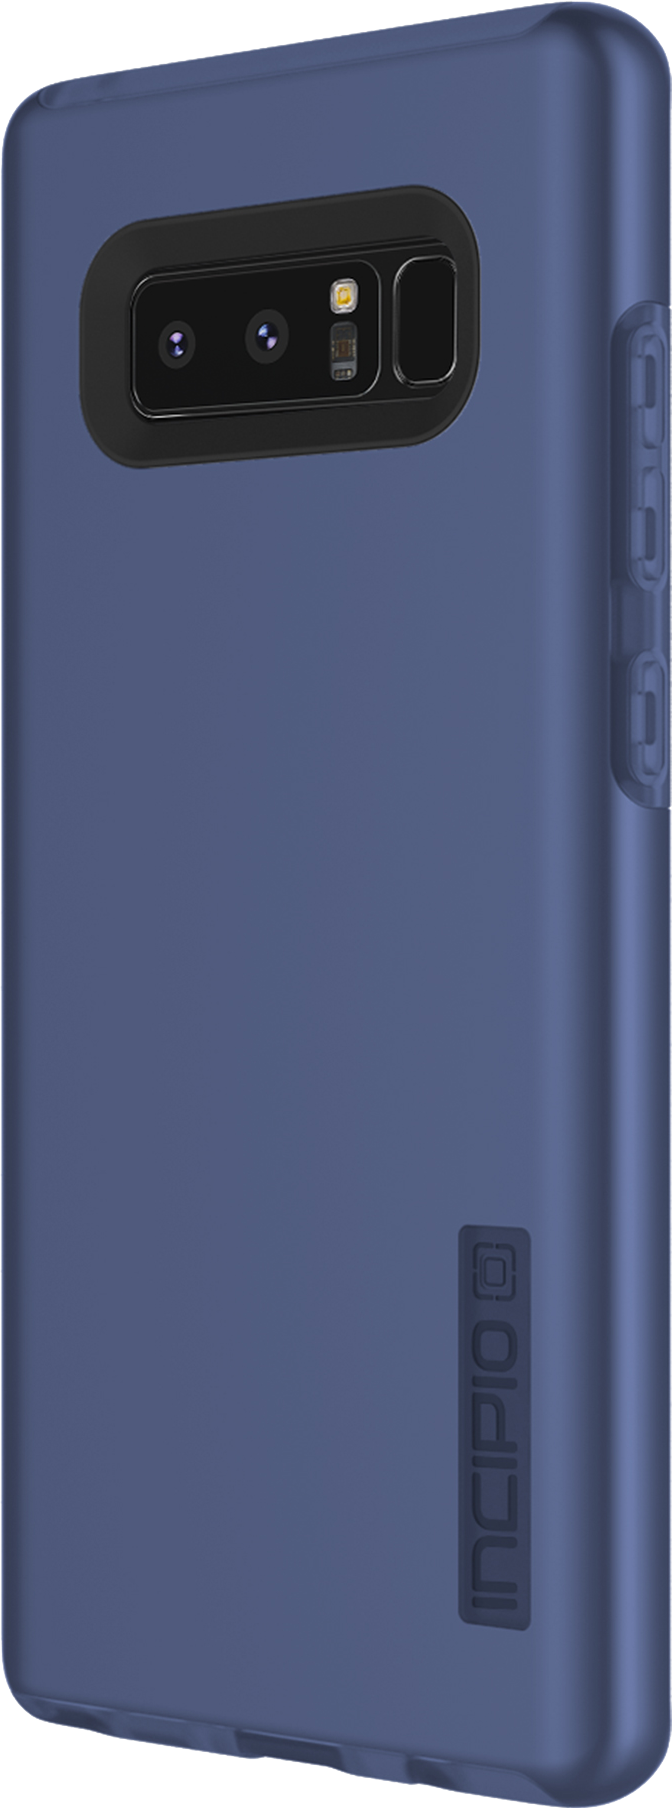 Galaxy Note8 DualPro Case - Midnight Blue